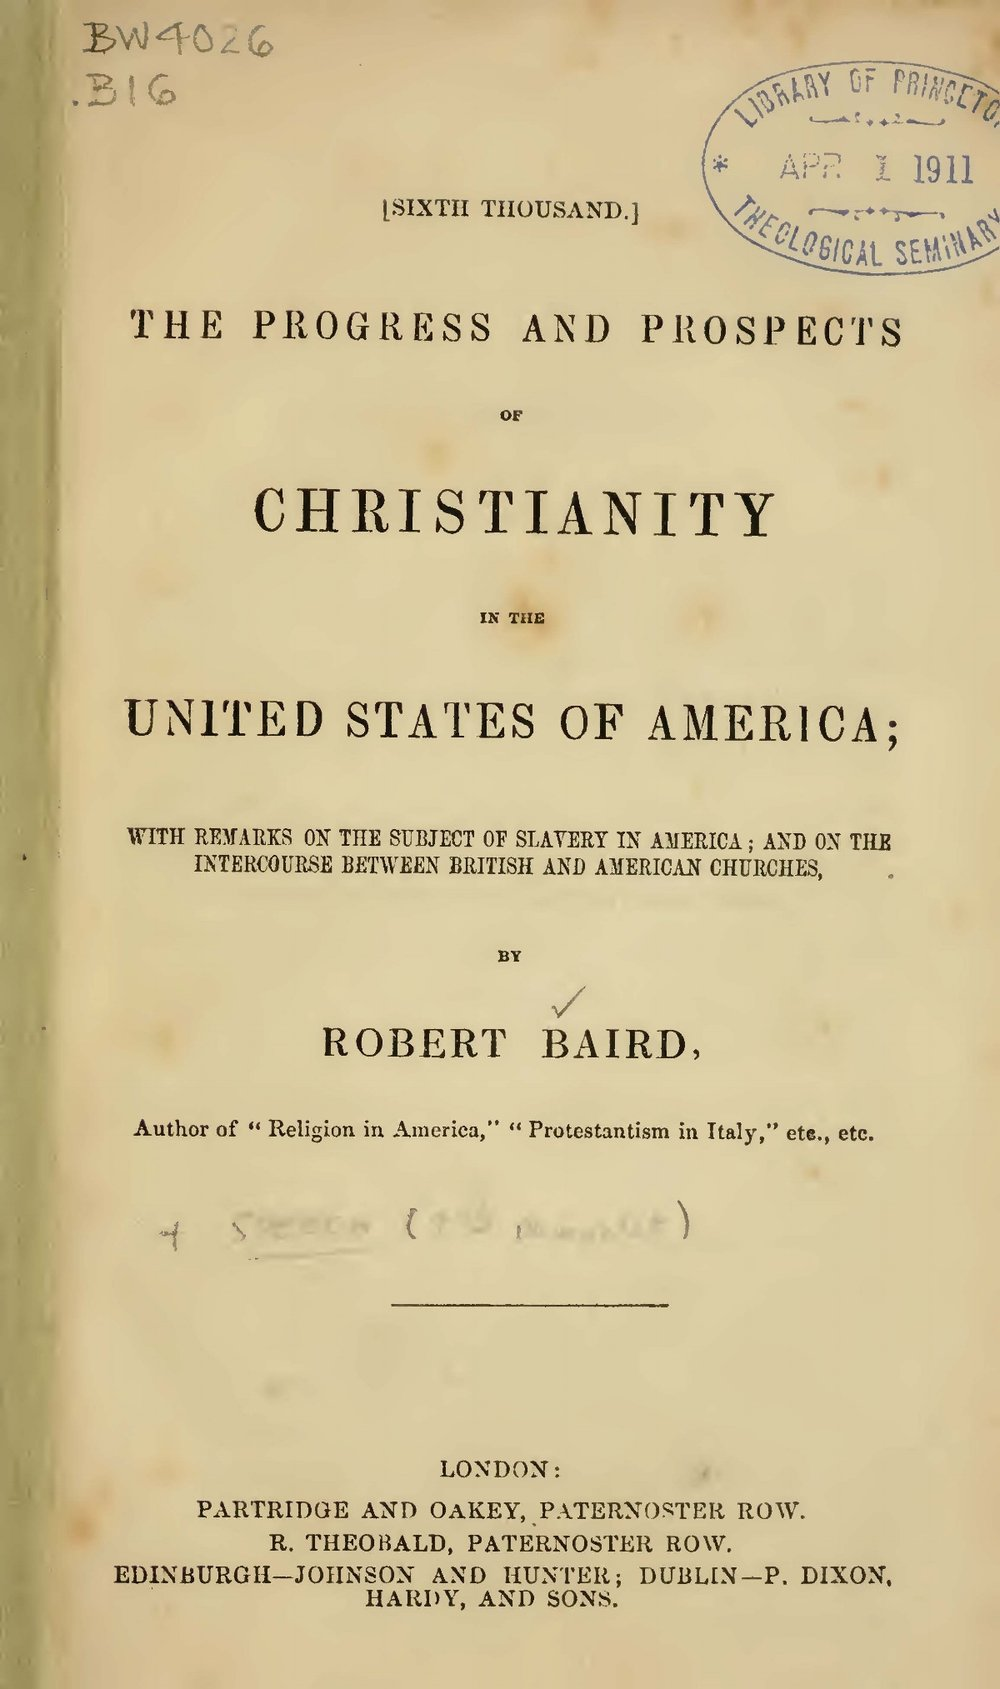 Baird, Robert, The Progress and Prospects of Christianity in the United States of America Title Page.jpg